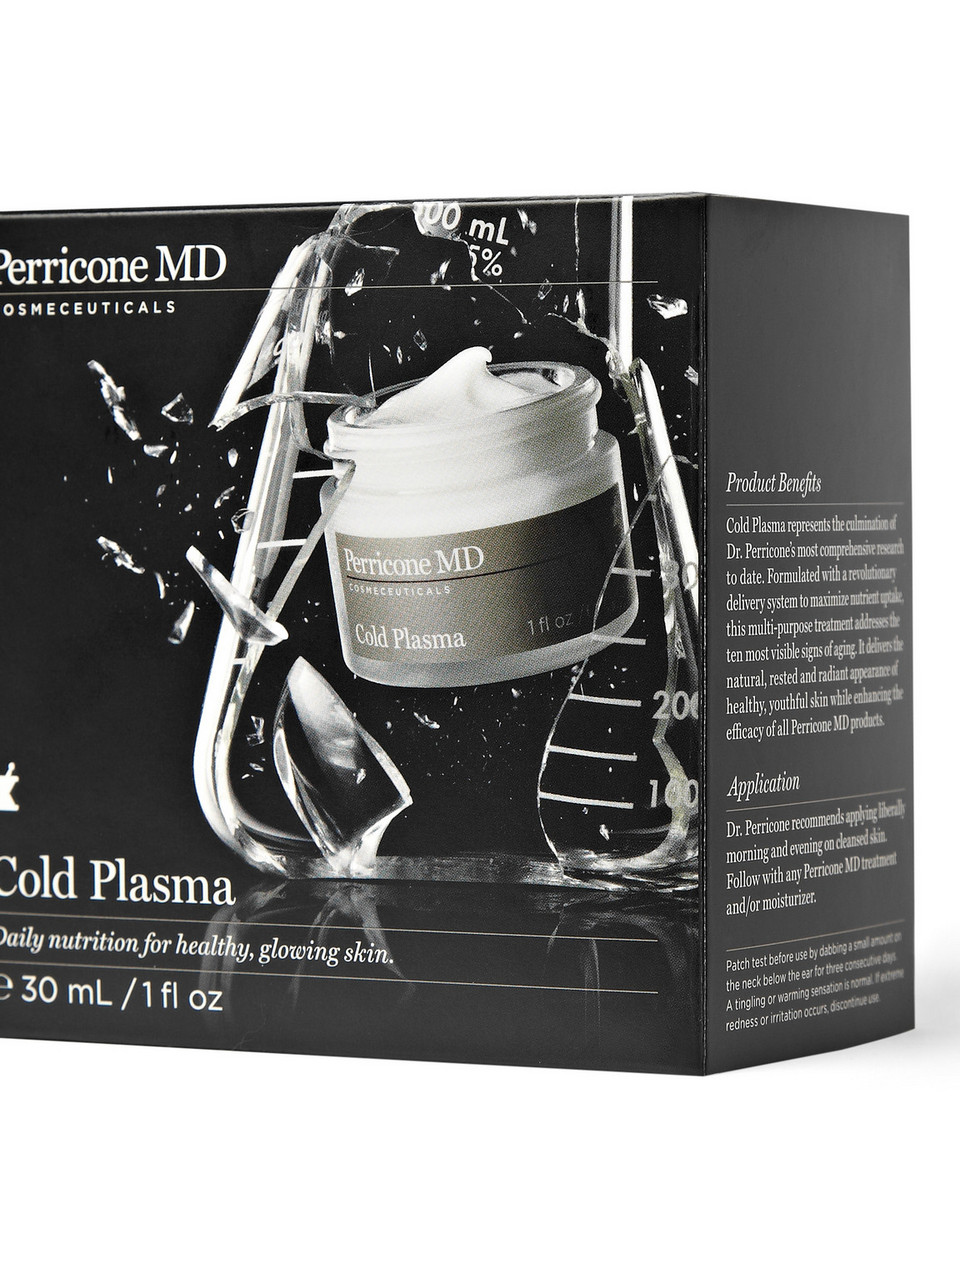 Perricone MD Cold Plasma, 30ml